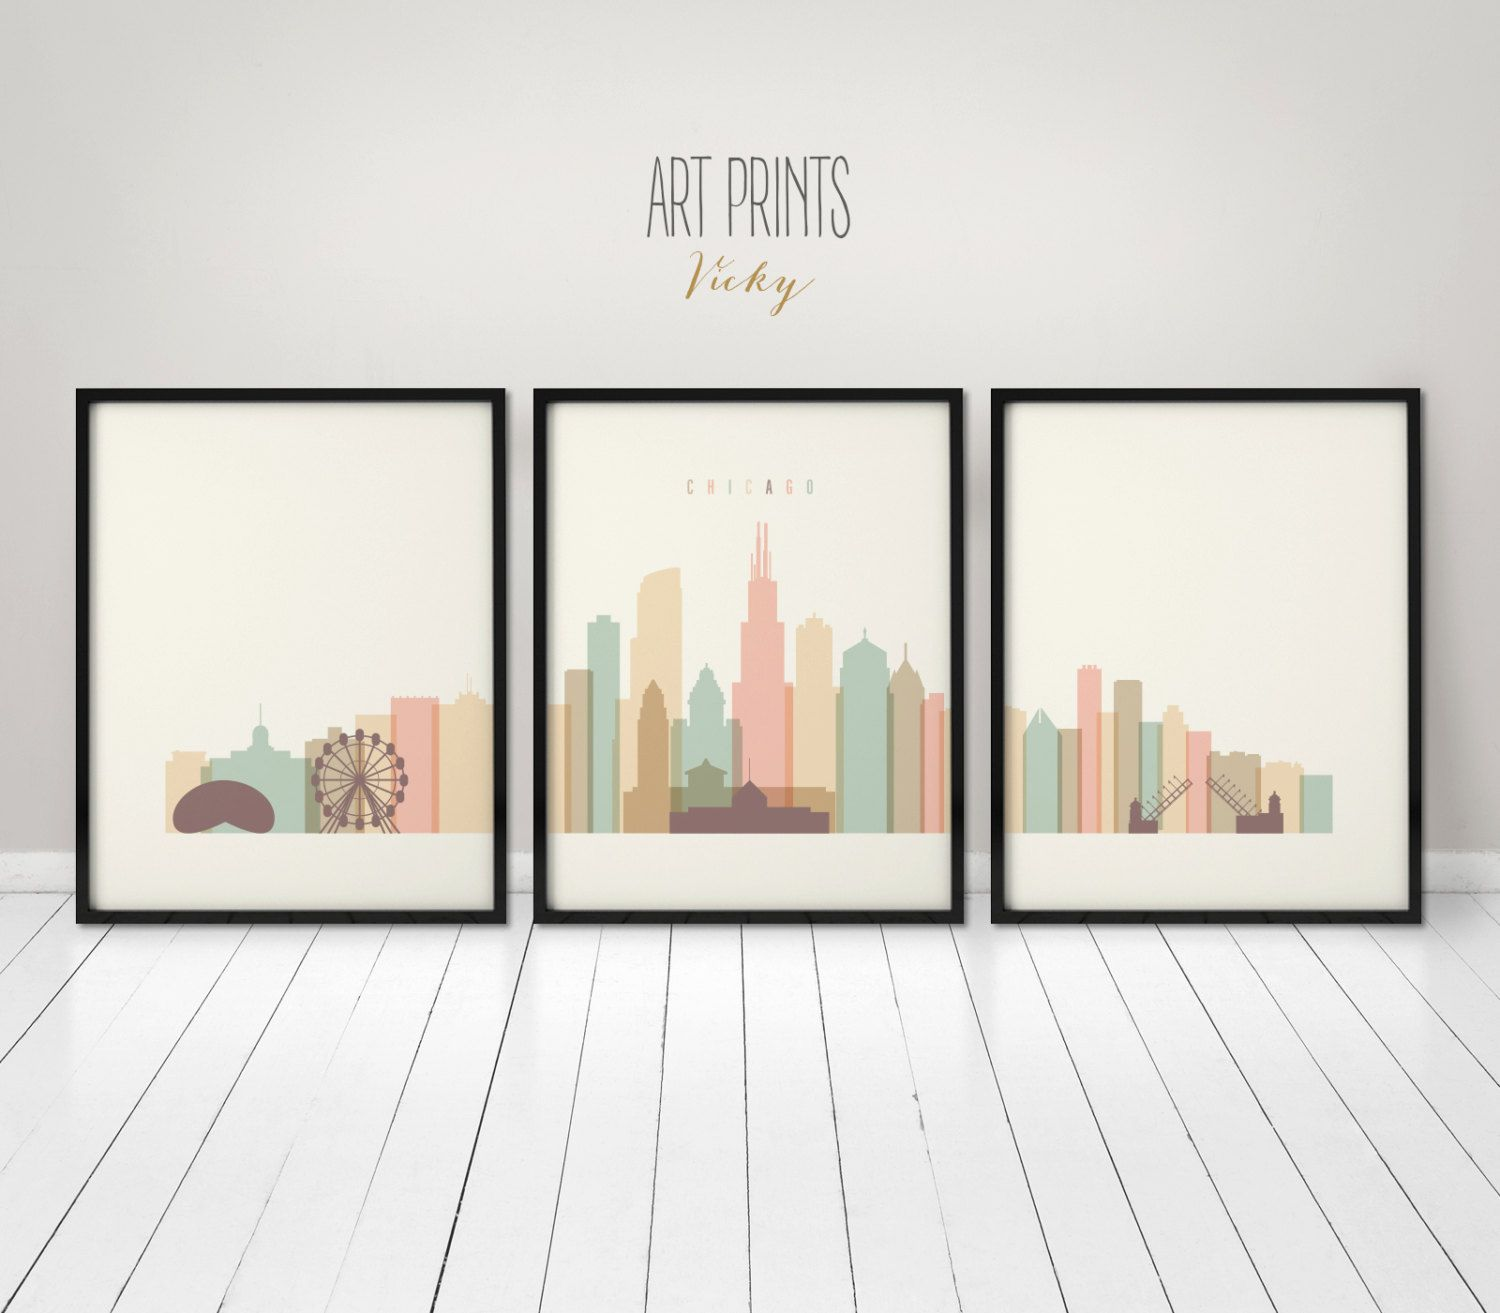 Chicago Art Prints Set Posters Wall Art Large Wall Art 3 Pieces Of Chicago Skyline City Poster Travel Ho Poster Prints Poster Wall Art Triptych Wall Art